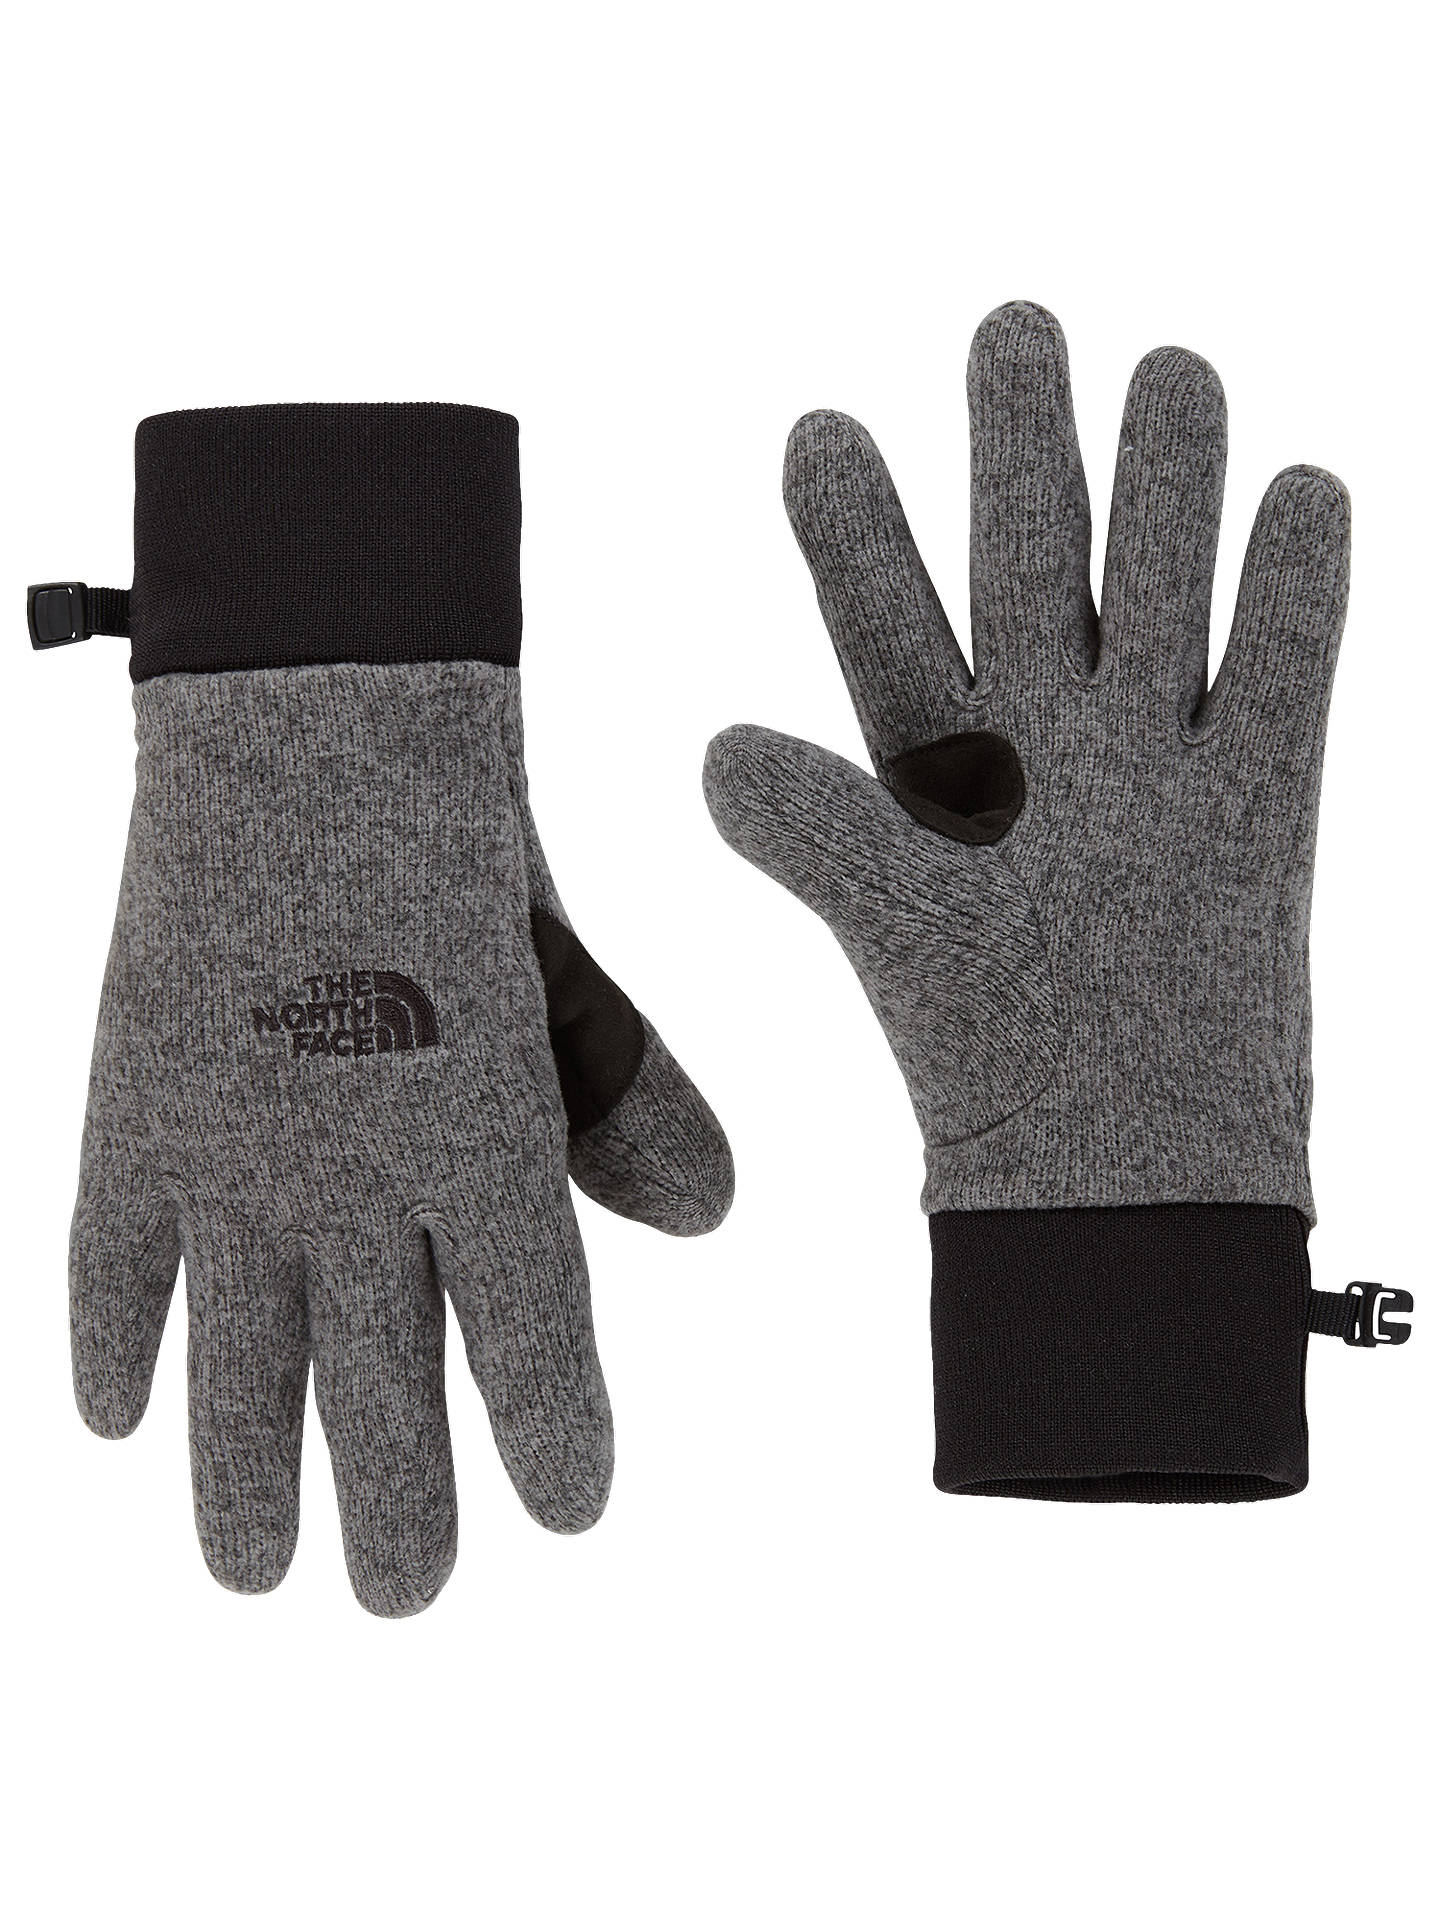 f352c70d1 The North Face Gordon Lyons Insulated Winter Gloves at John Lewis ...